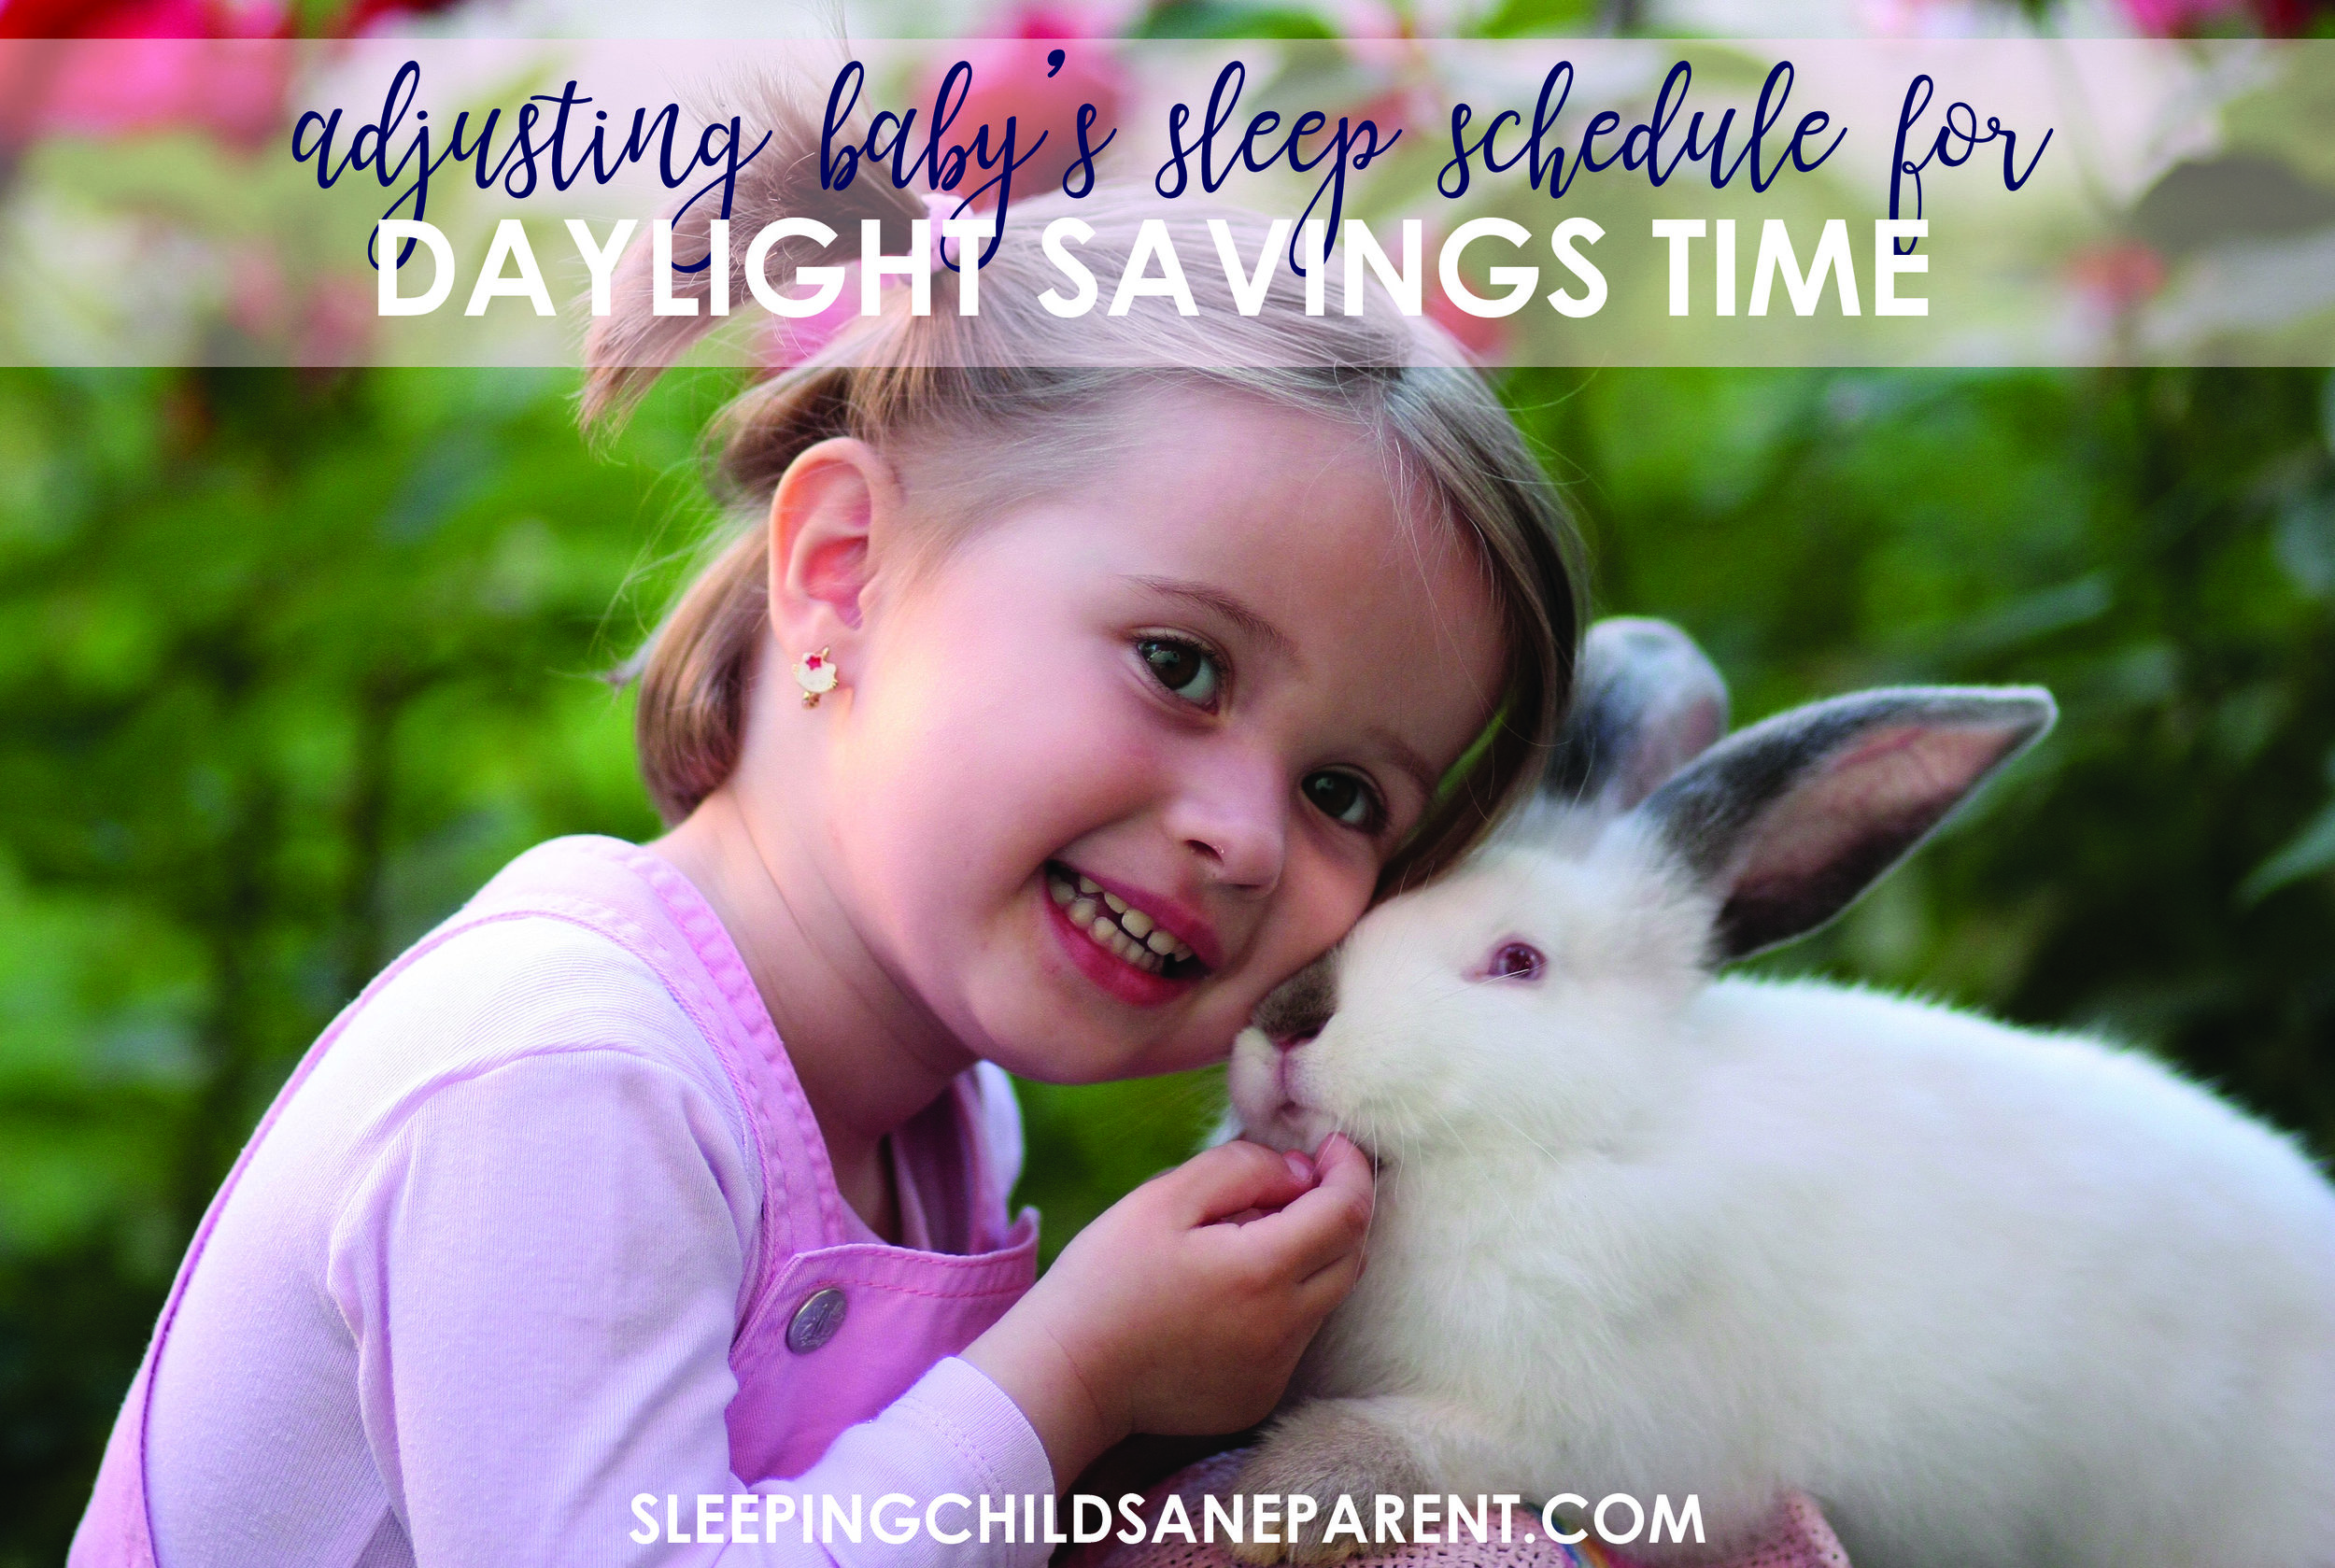 Use these helpful tips to help Baby's schedule spring forward to along with the new Daylight Savings schedule!